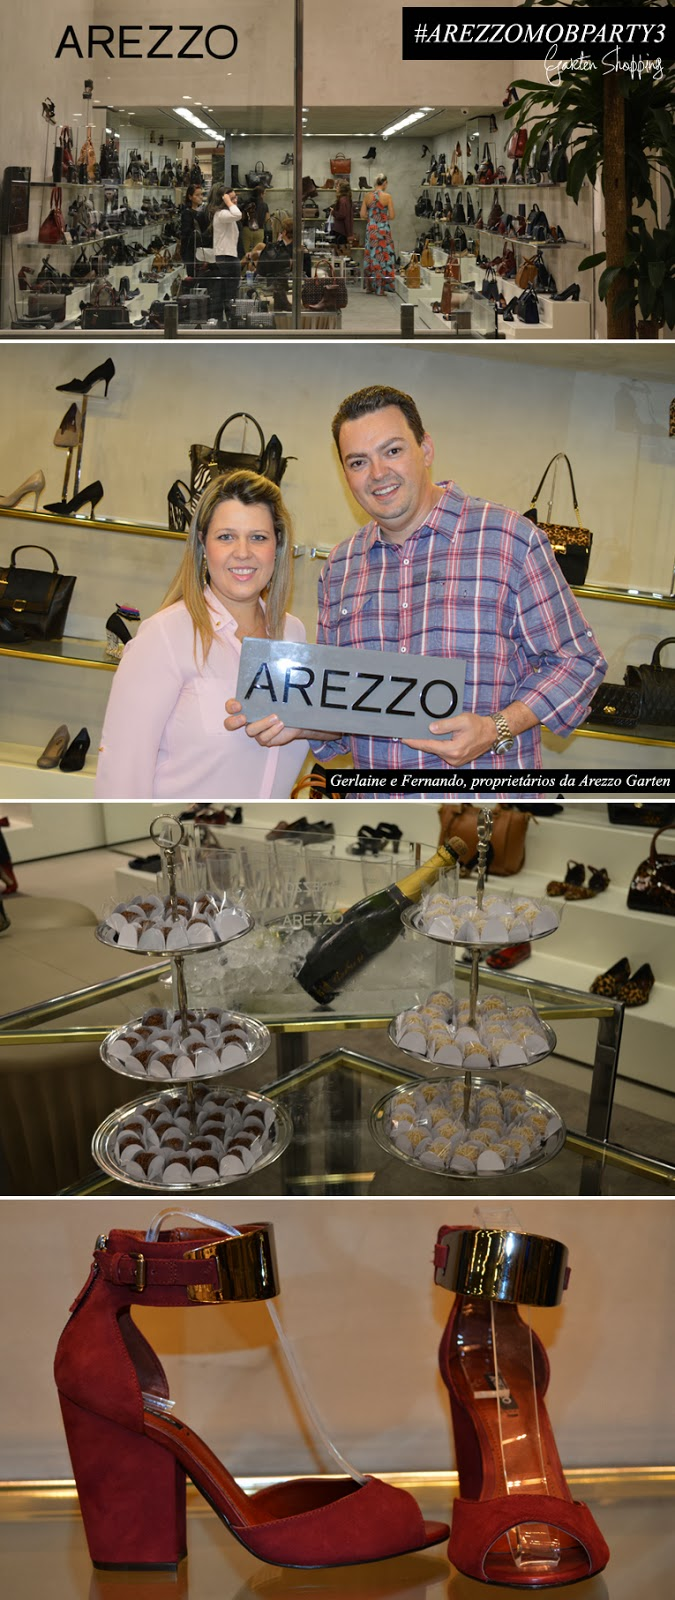 Arezzo, Joinville, Garten Shopping, mob party, 3, Arezzo Mob Party 3 - Garten Shopping